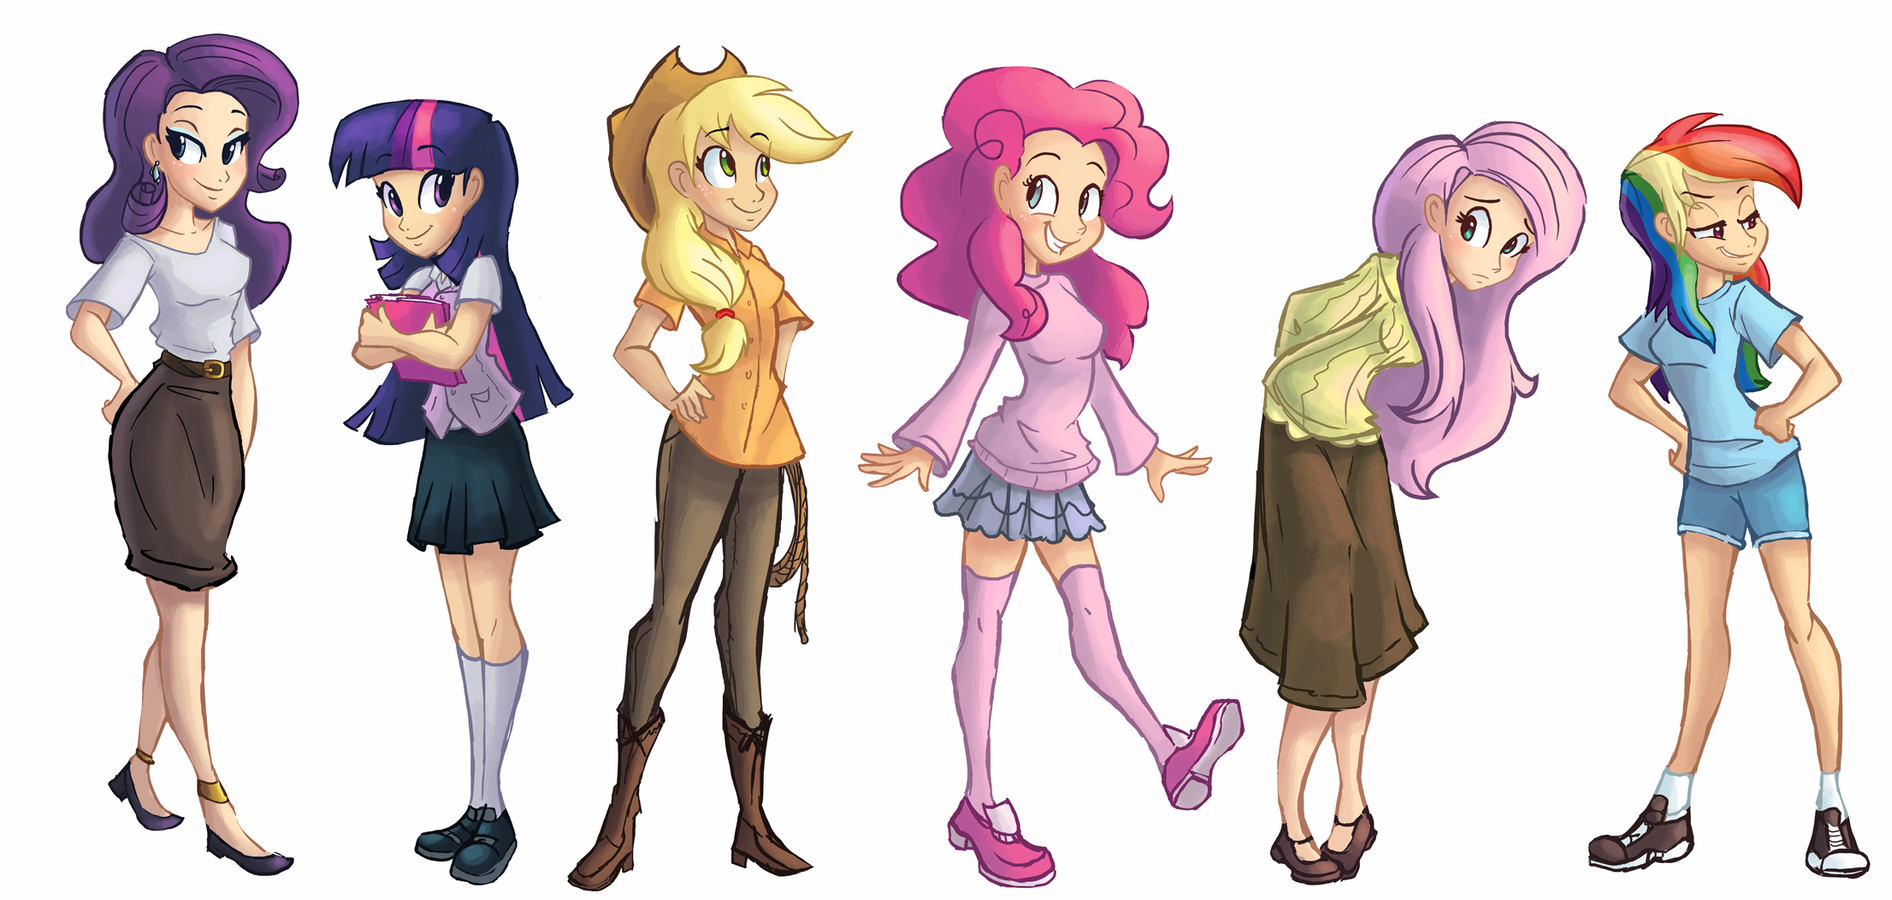 Drawn my little pony mane six human Little human pony pony magical